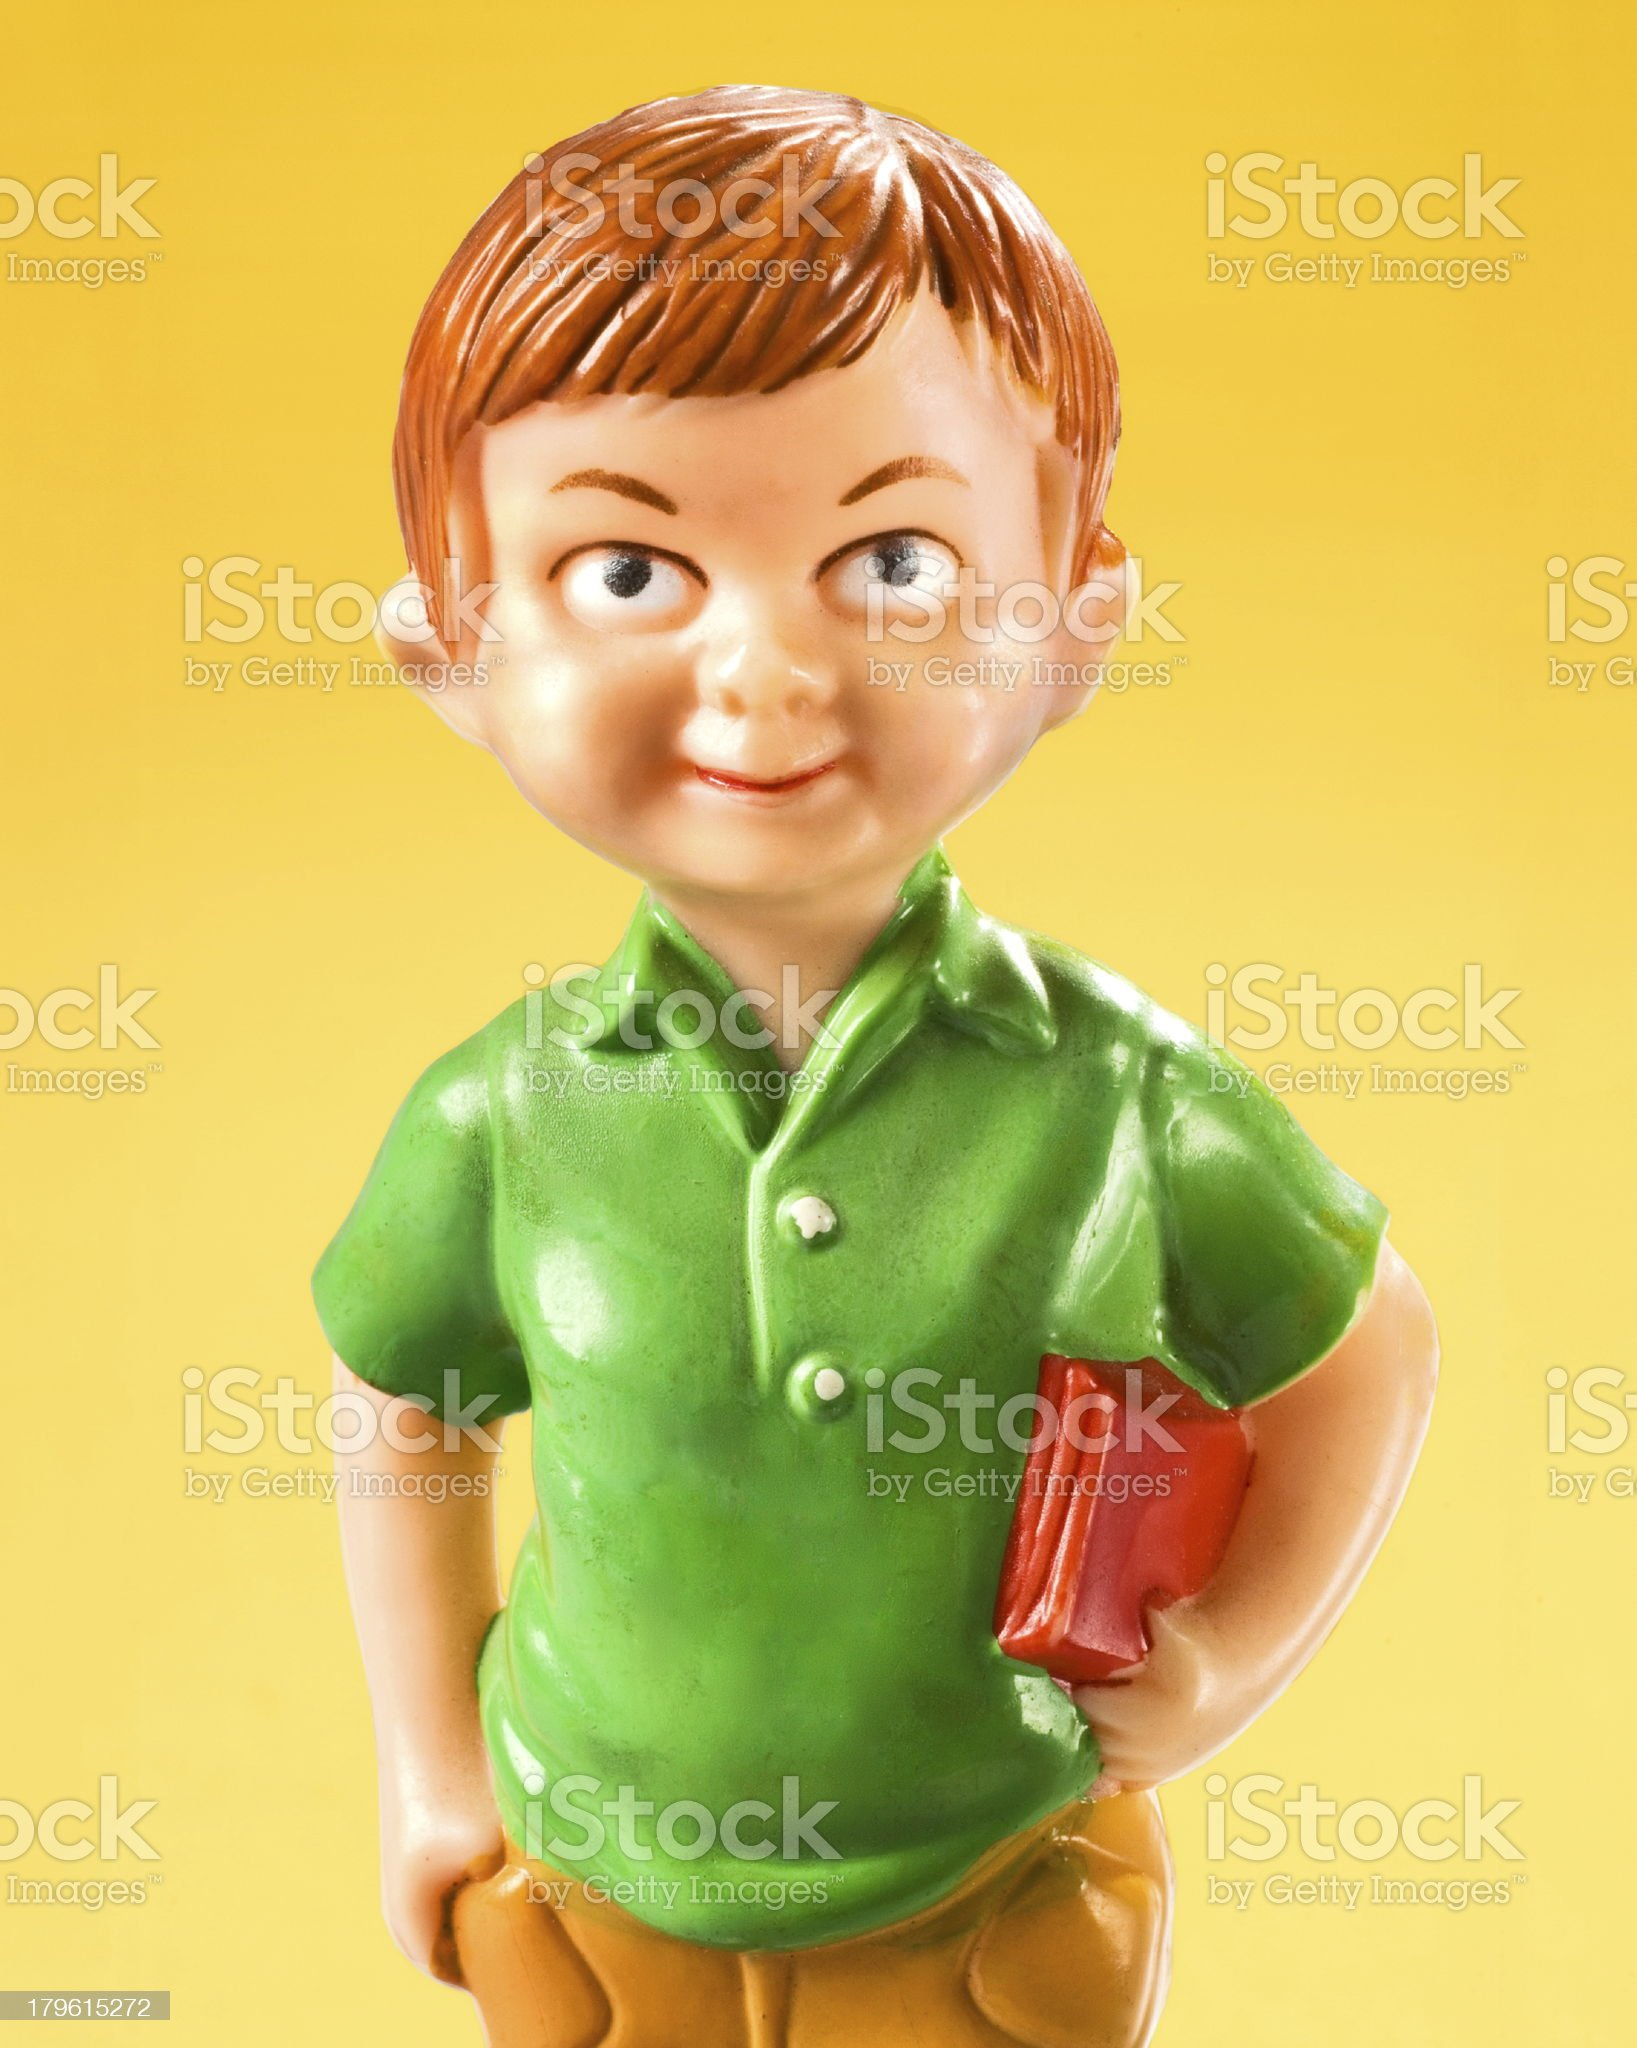 Boy With Book Under His Arm royalty-free stock photo